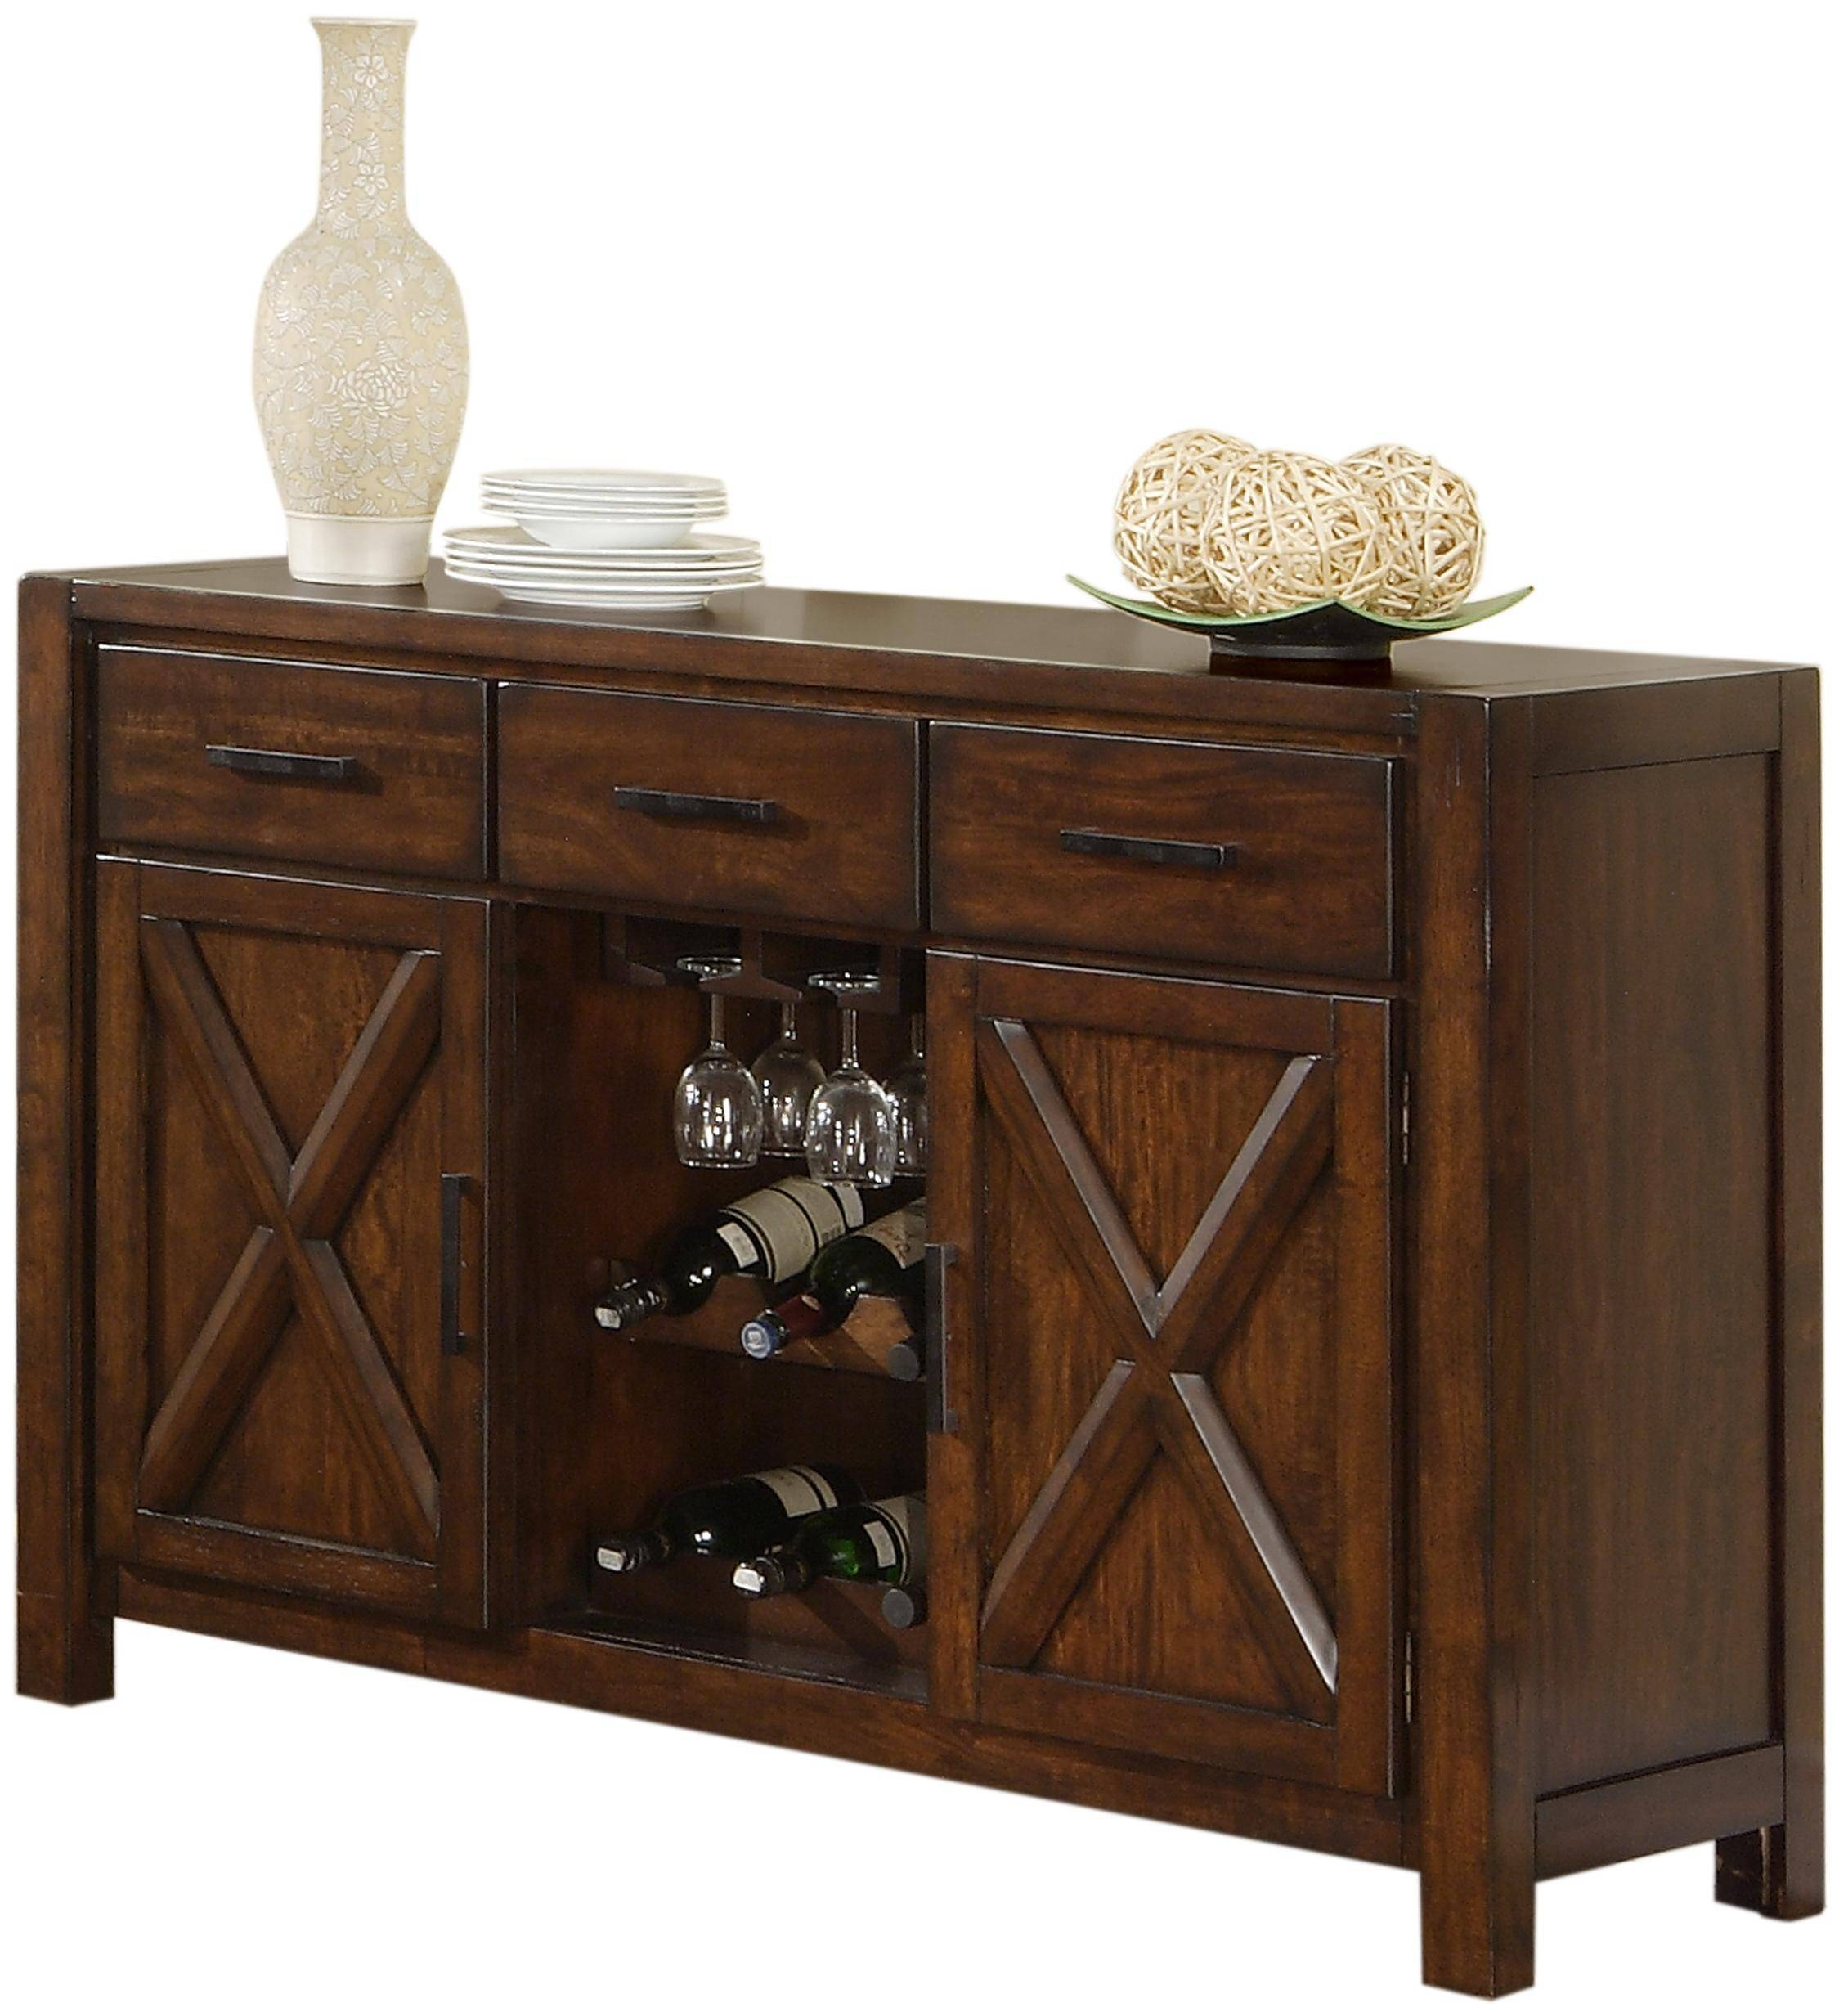 Holland House Lakeshore Dining Sideboard W/ Wine Rack And Stem Intended For Sideboards With Wine Racks (#3 of 20)